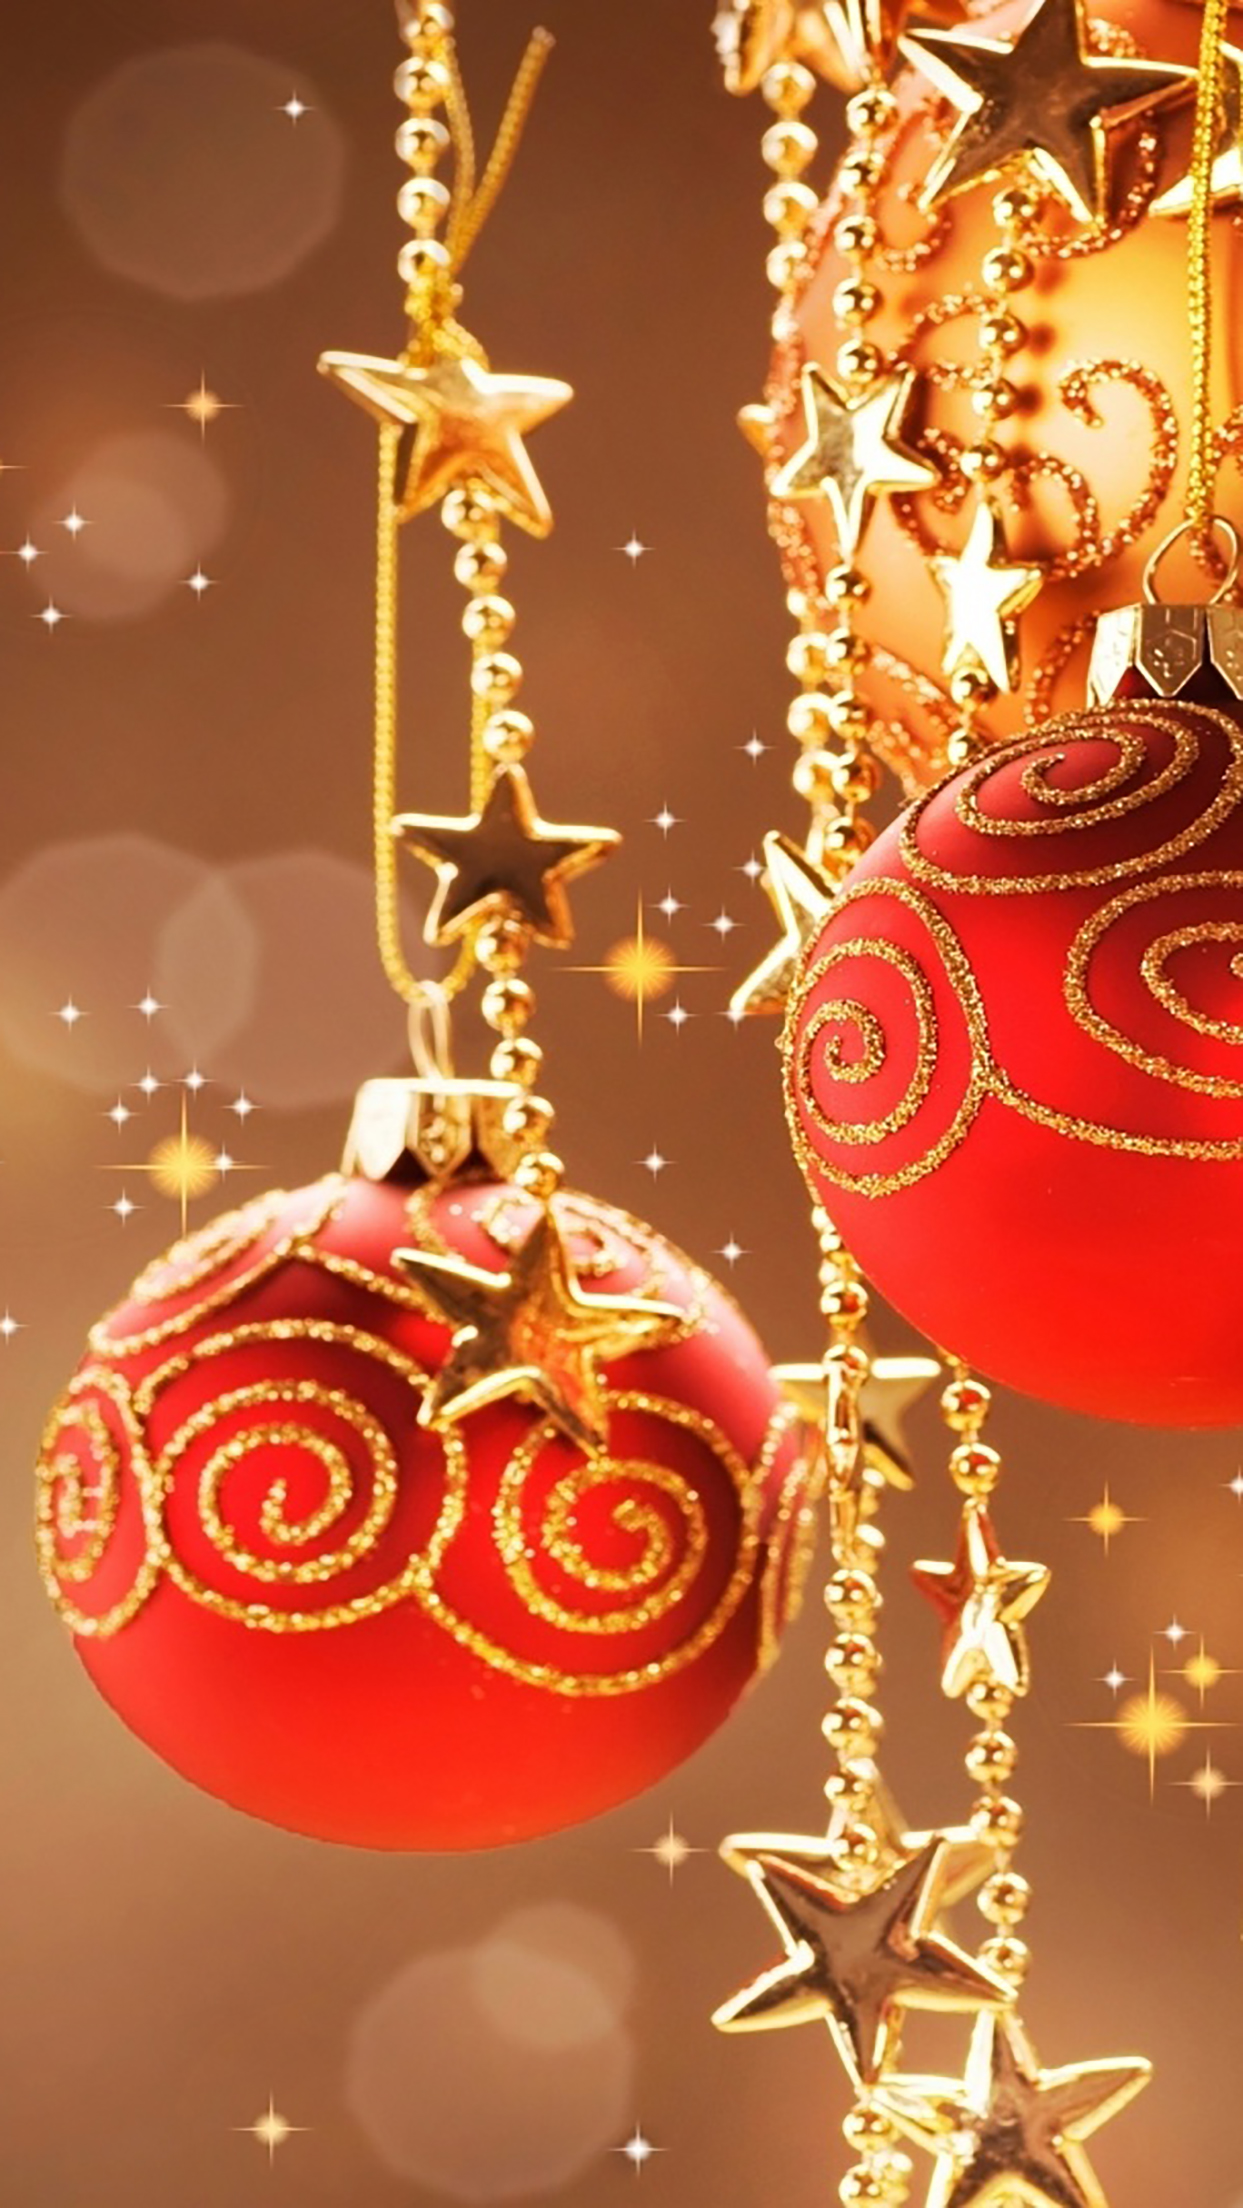 Christmas Decorations 3Wallpapers iPhone Parallax Les 3Wallpapers iPhone du jour (24/12/2016)